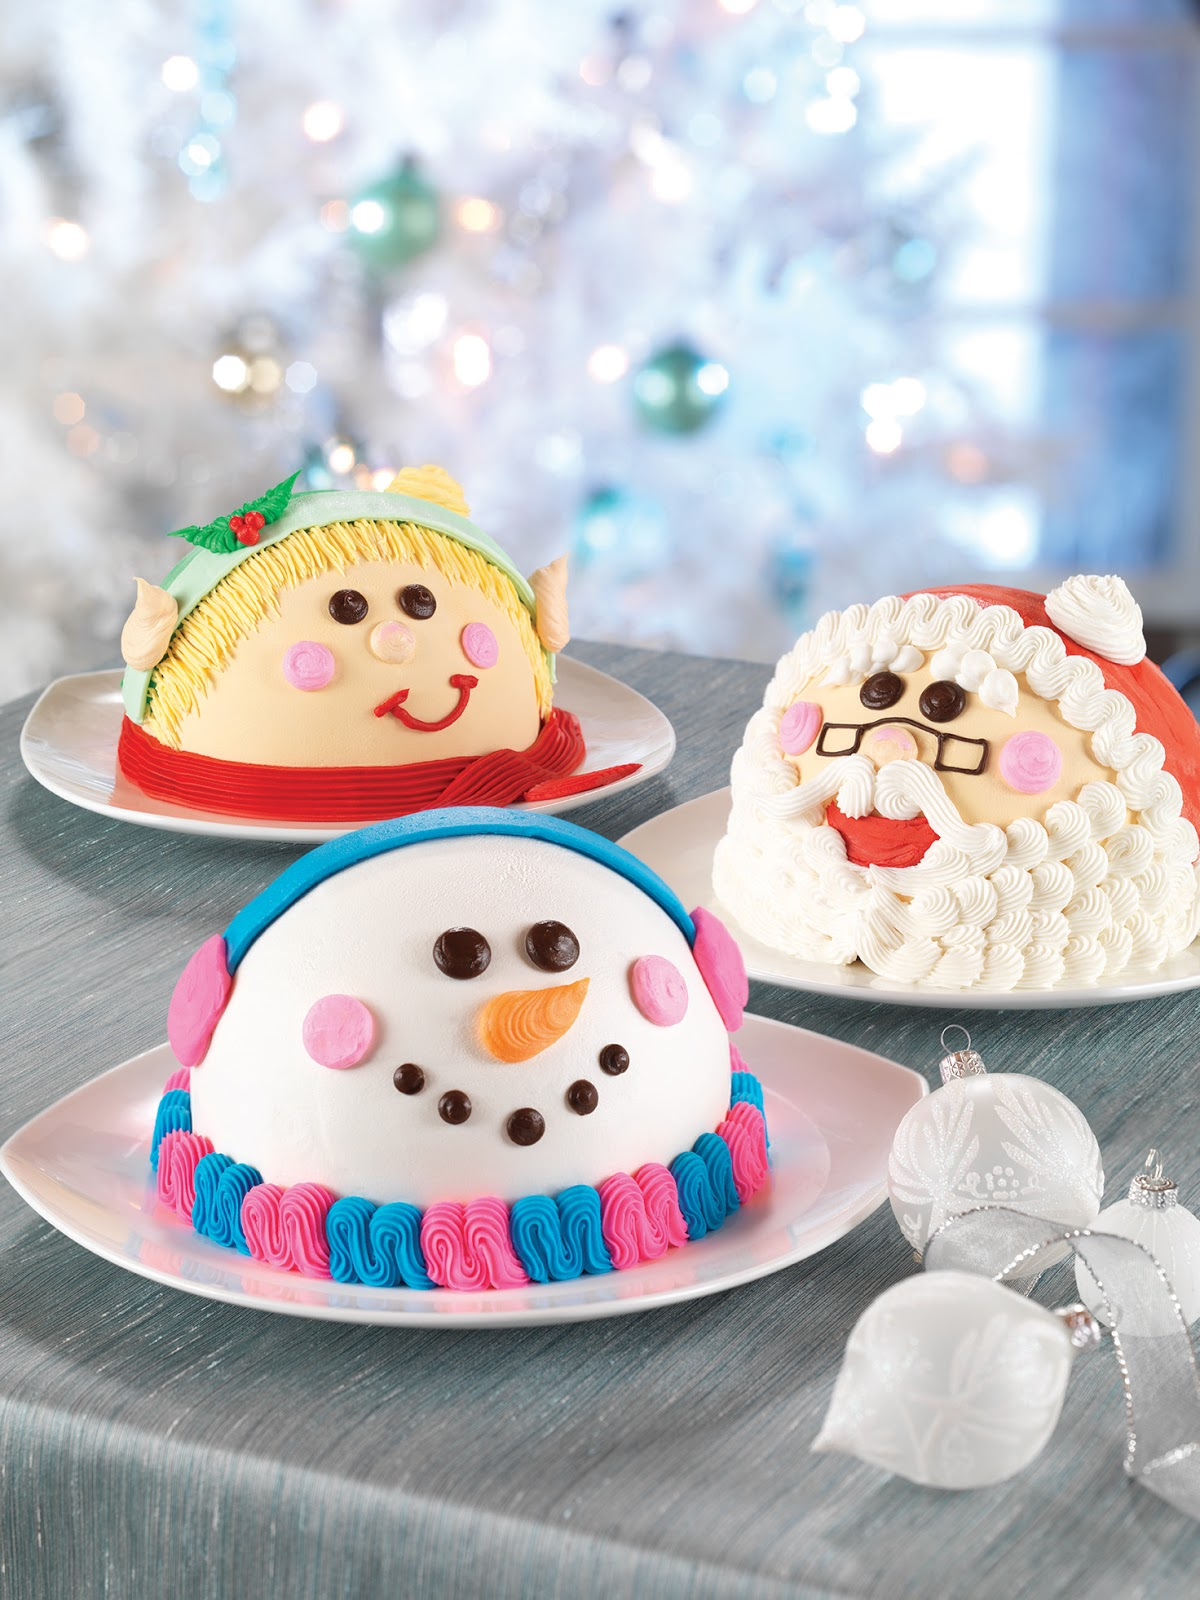 Baskin Robbins Ice Cream Cakes. Baskin Robbins sells ice cream sheet cakes that contain ice cream, frosting, and cookie crumbles or cake. You can get a small ⅓ sheet cake for about $30, or you can order a double sheet cake for $ Round cakes are available in a six inch size for $ or a .